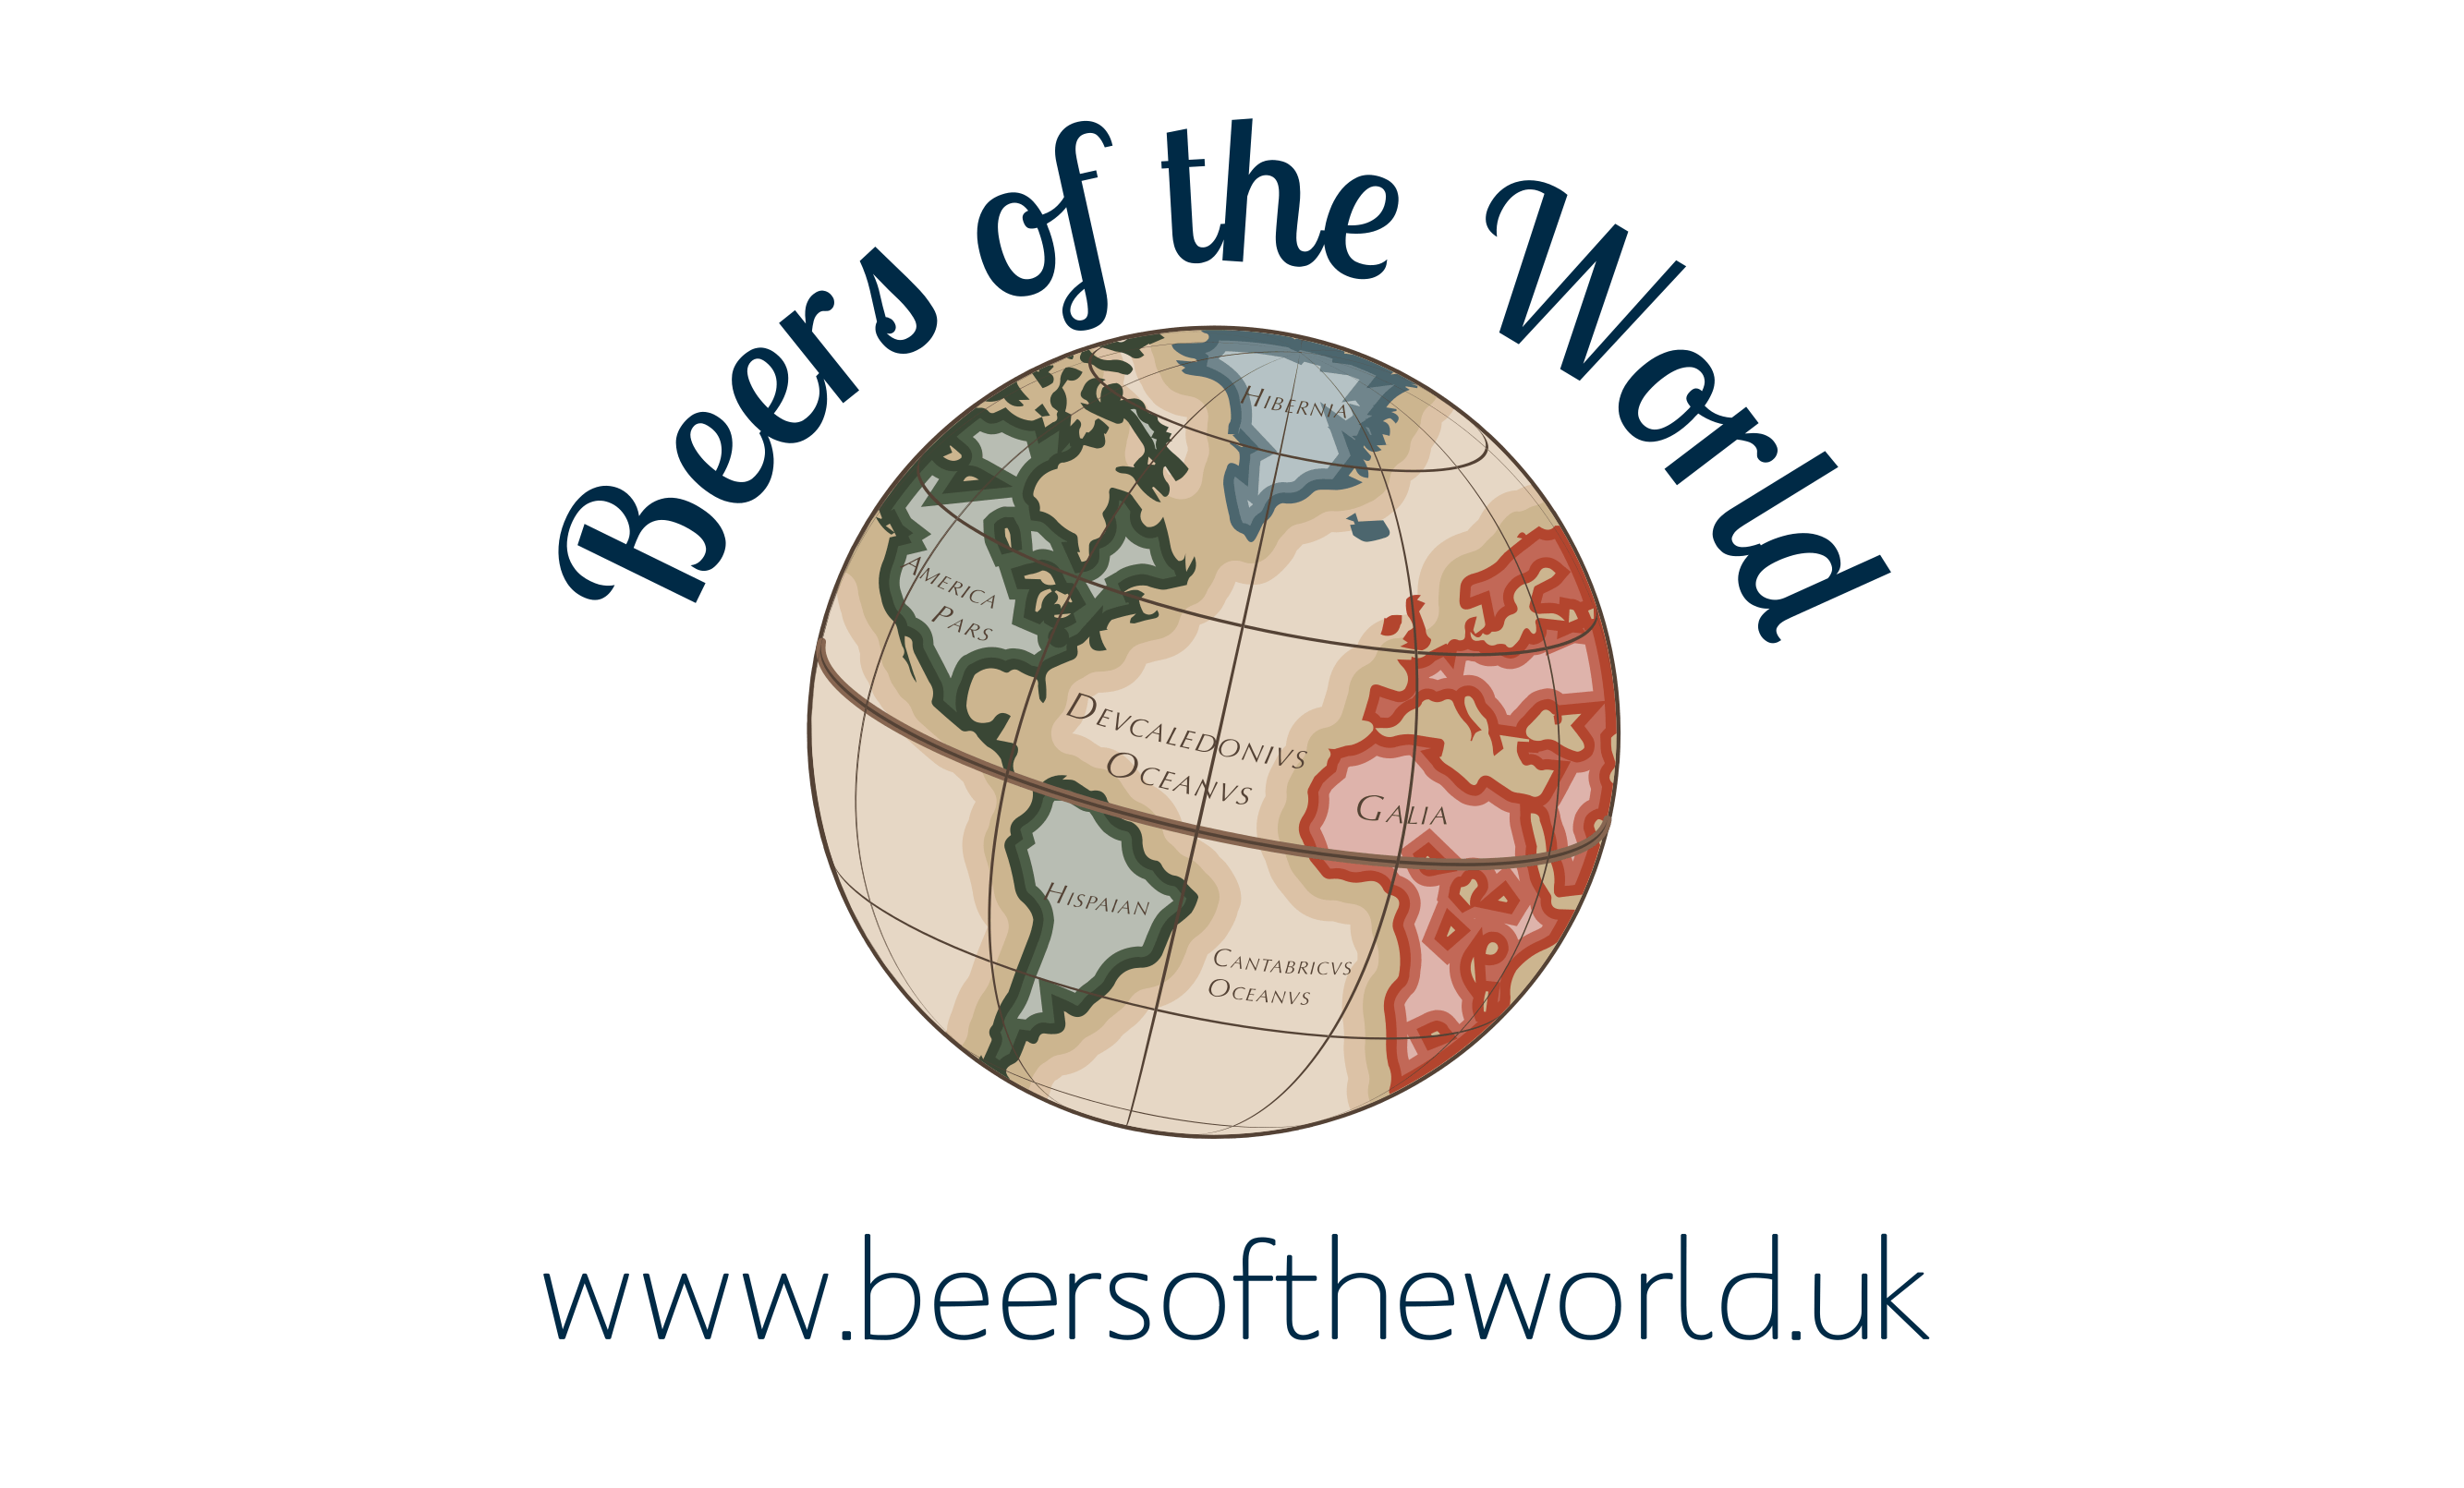 Beers Of The World logo